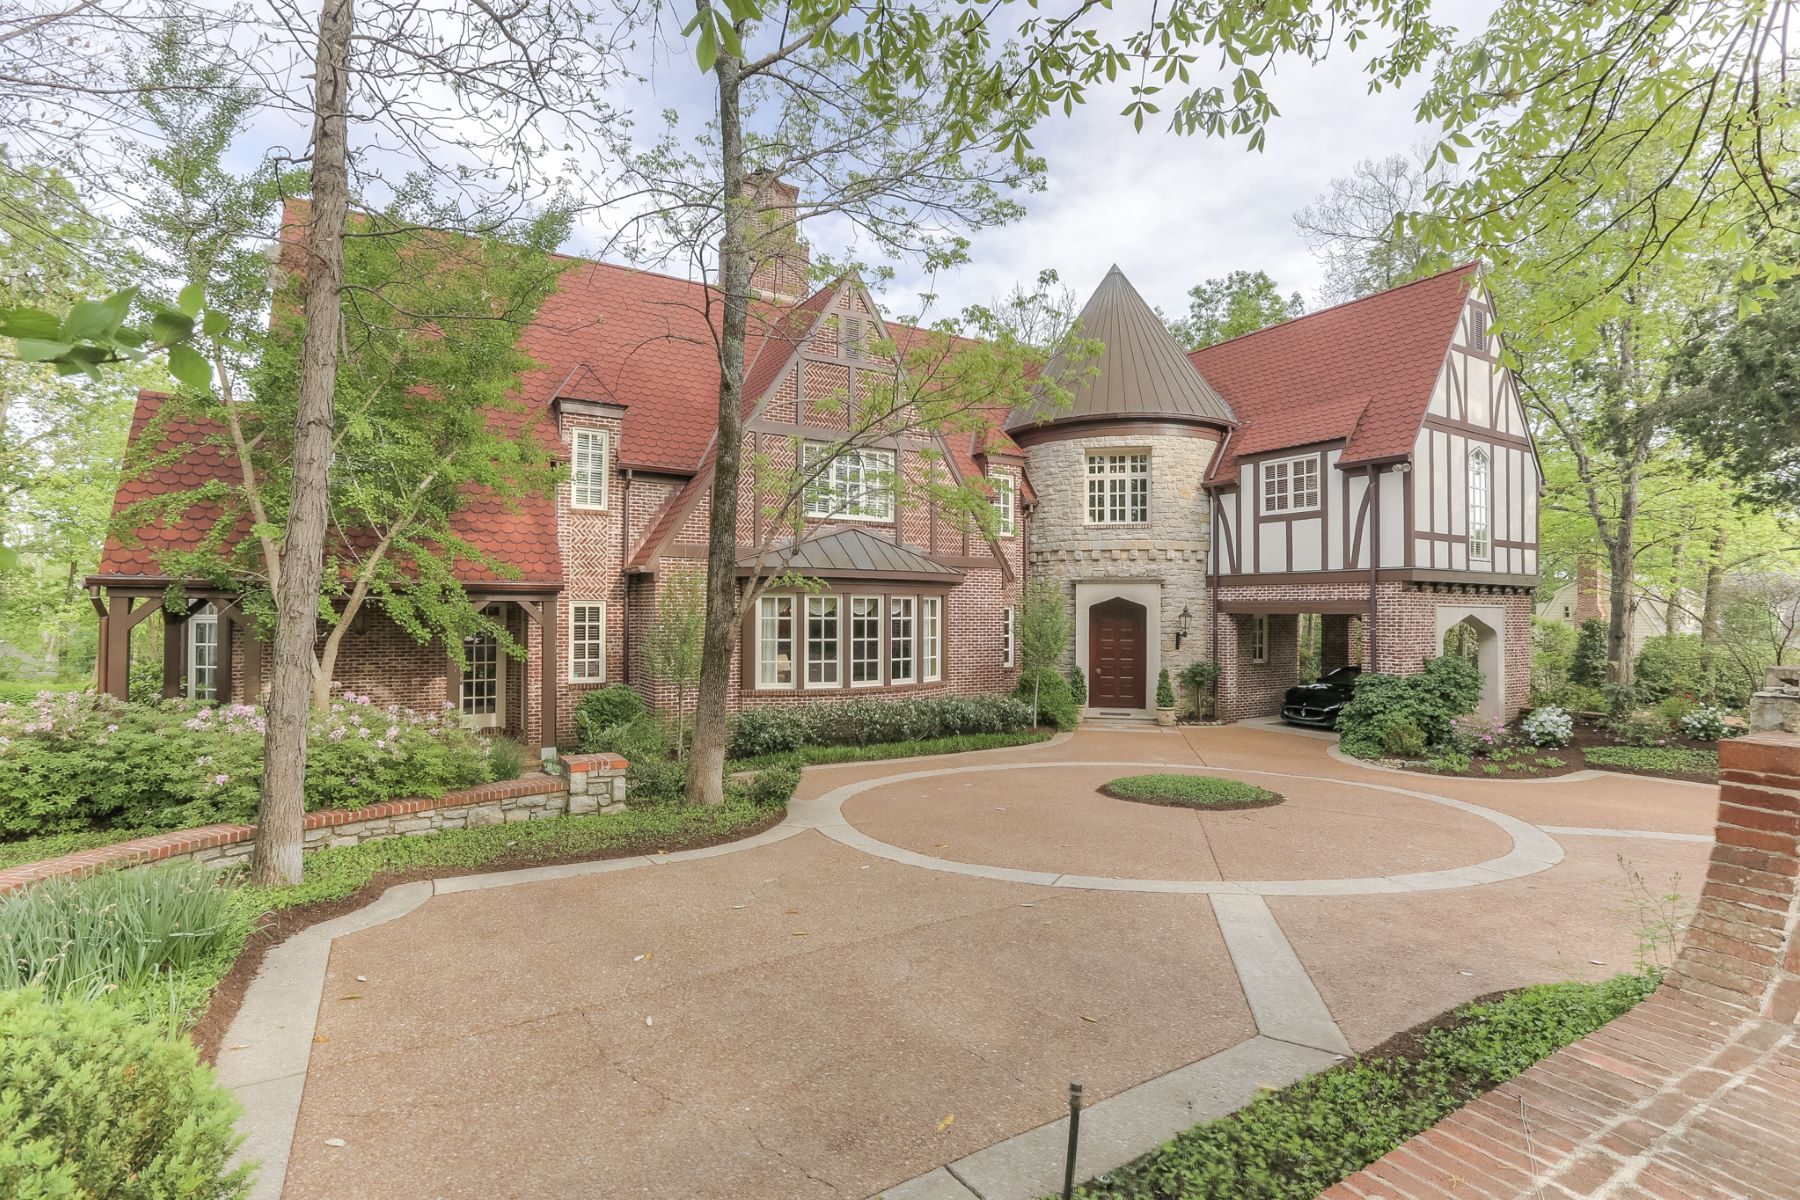 Single Family Home for Sale at Beautiful English Tudor 624 Westview Avenue Nashville, Tennessee 37205 United States